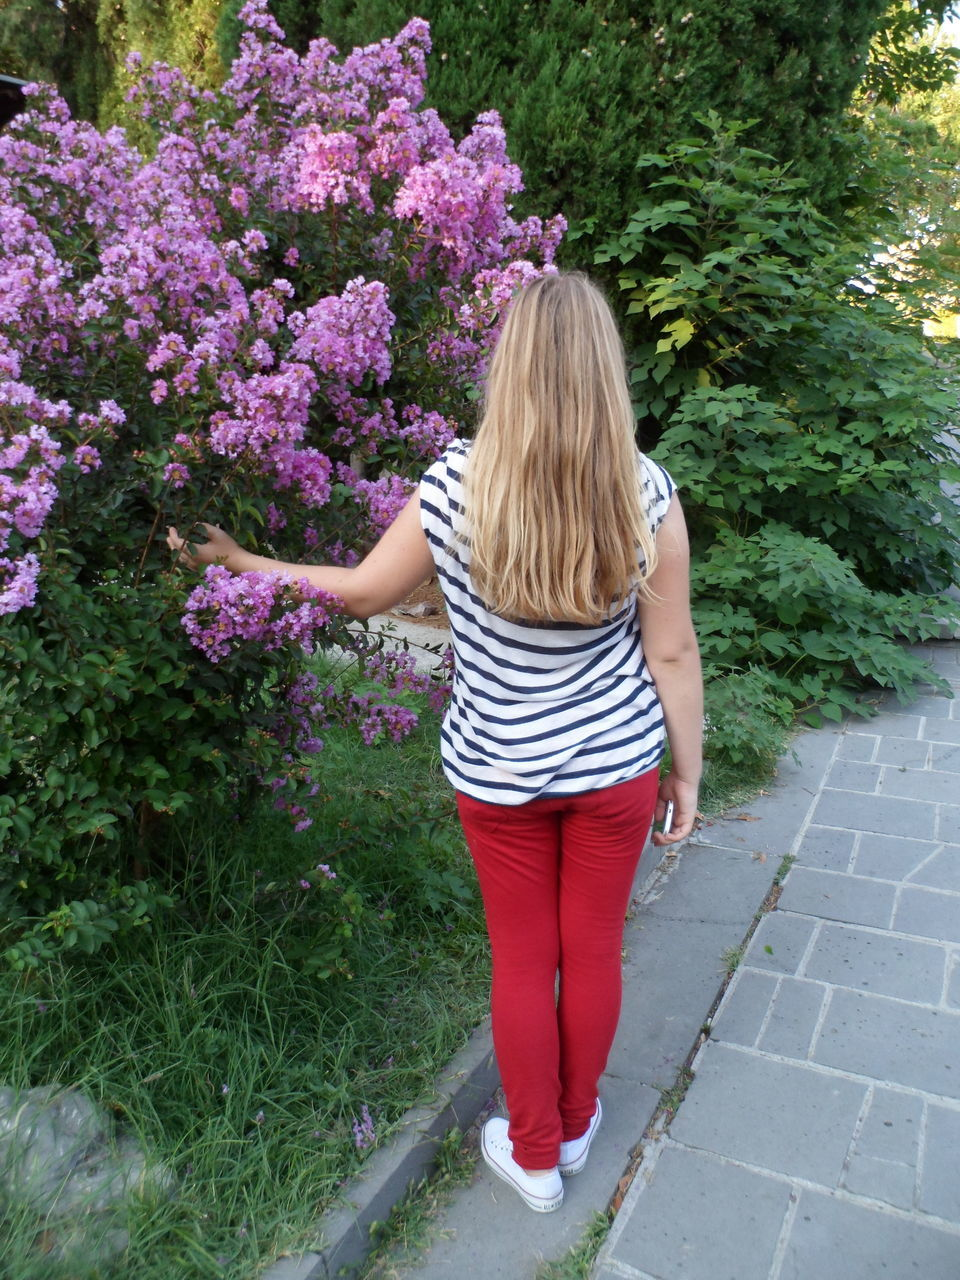 rear view, blond hair, one person, flower, full length, casual clothing, day, real people, plant, only women, outdoors, growth, standing, one woman only, leisure activity, young adult, nature, one young woman only, young women, beautiful woman, adults only, people, adult